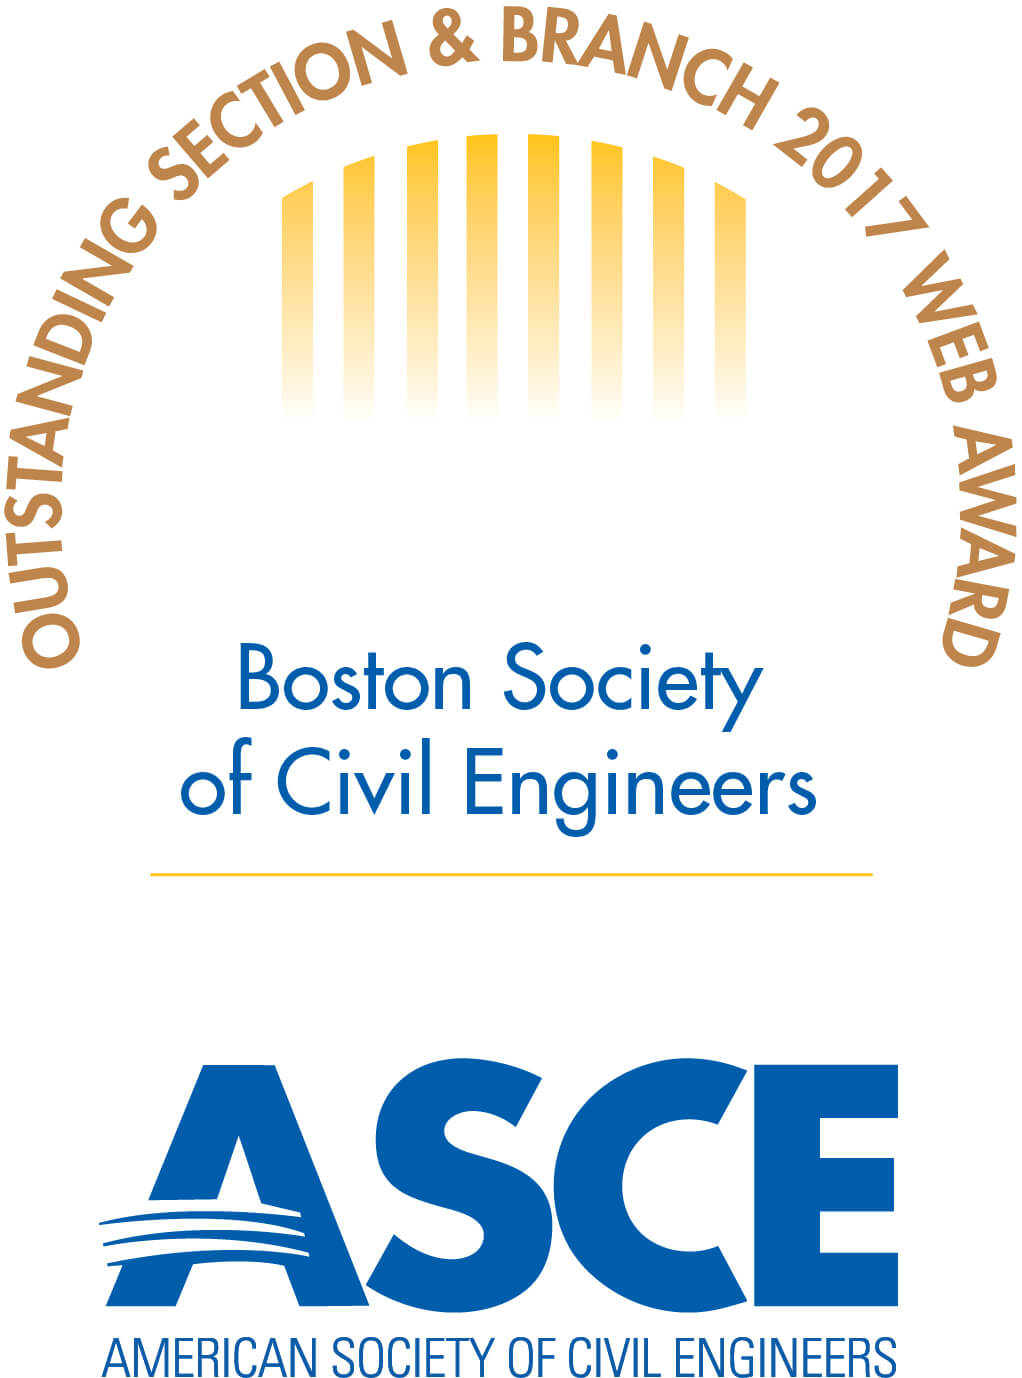 Boston Society of Civil Engineers 2016 WebAward